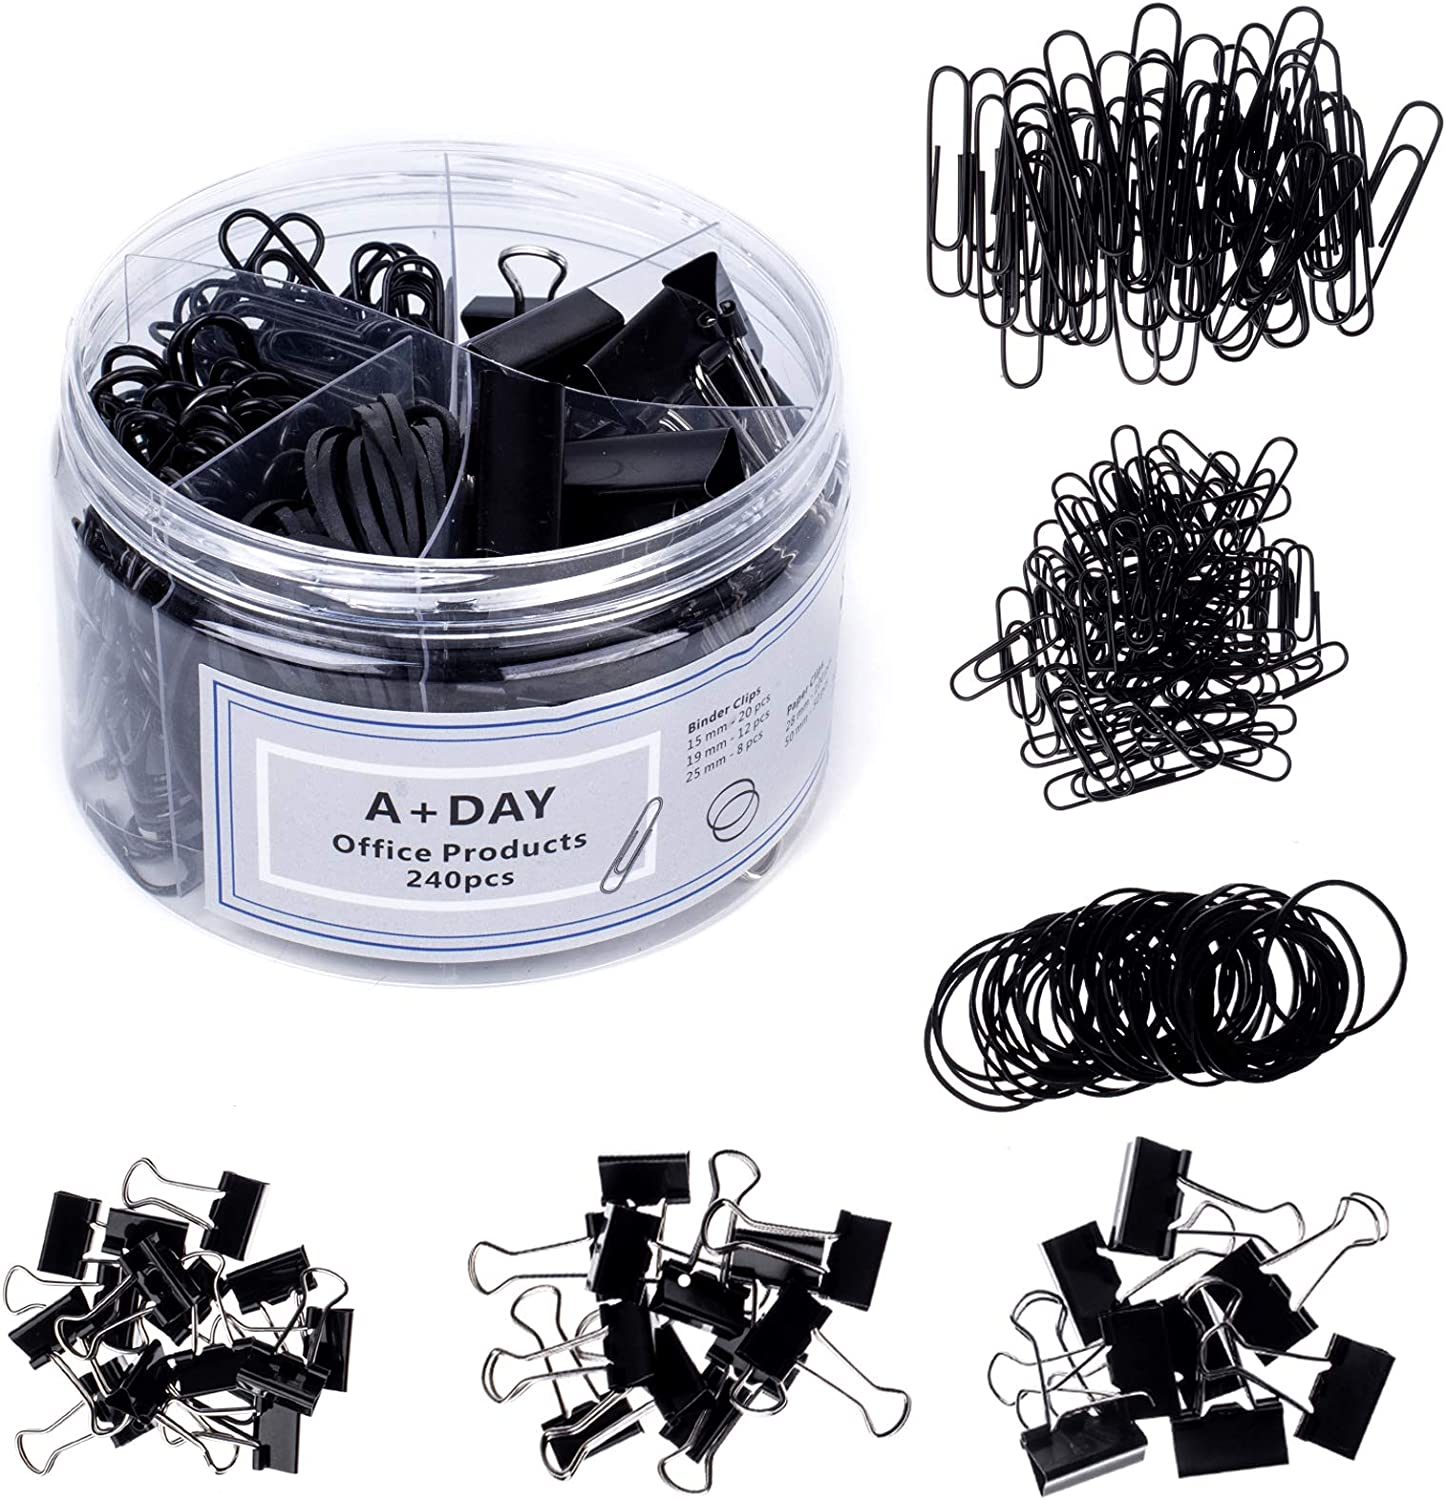 A+DAY 240 pcs Binder Clips, Paper Clips, Rubber Bands, Paper Clamps Assorted Size, Jumbo Paper Clips, Small Paper Clips, Large Binder Clips, Medium Binder Clips, Small Binder Clips (Black)